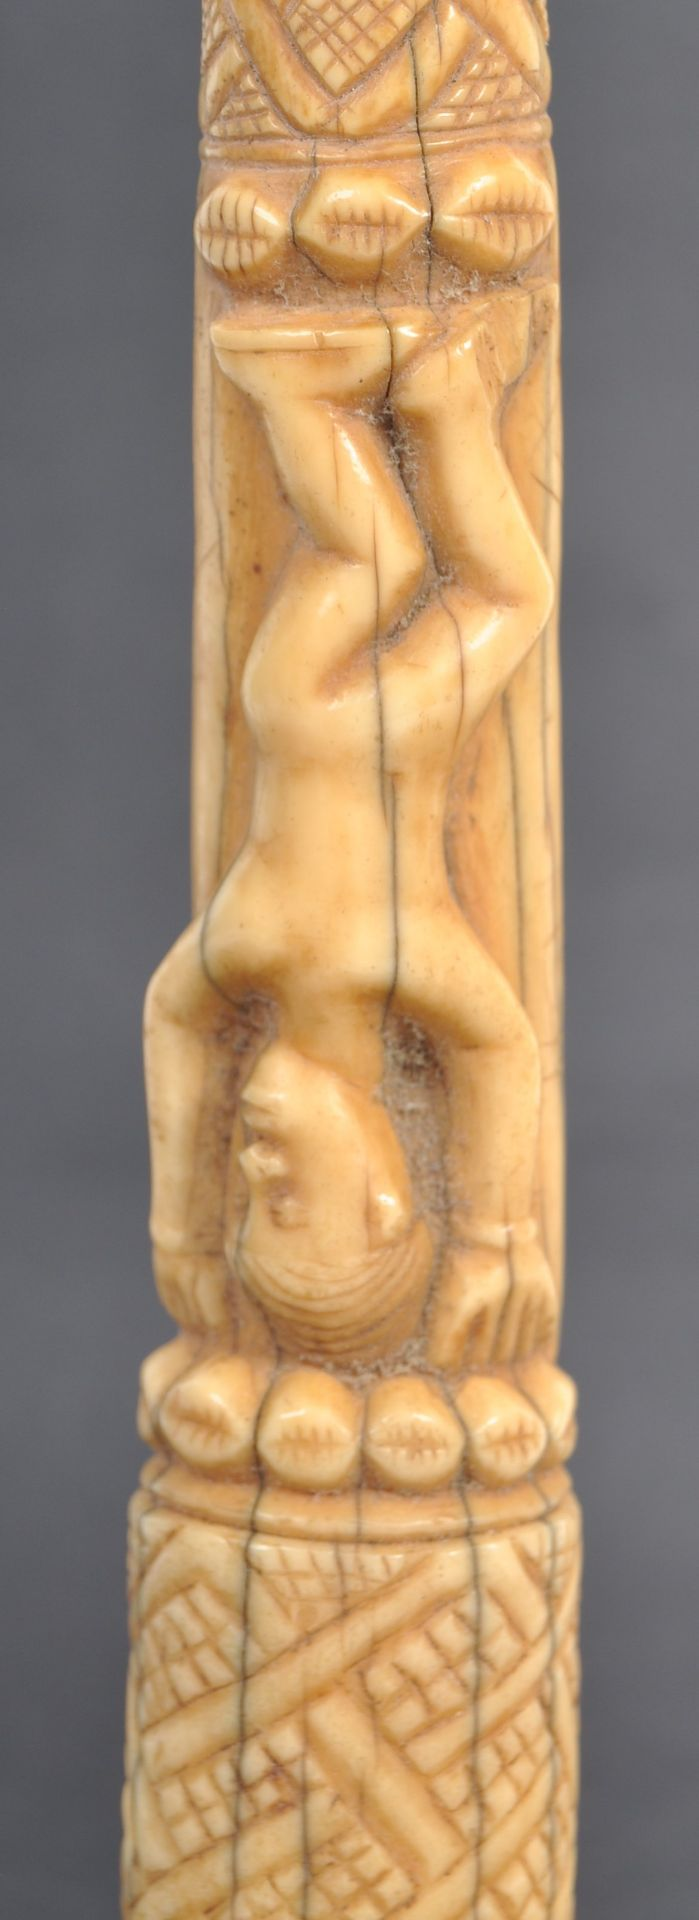 Los 554 - TRIBAL ANTIQUITIES - COLLECTION OF CARVED IVORY TUSKS